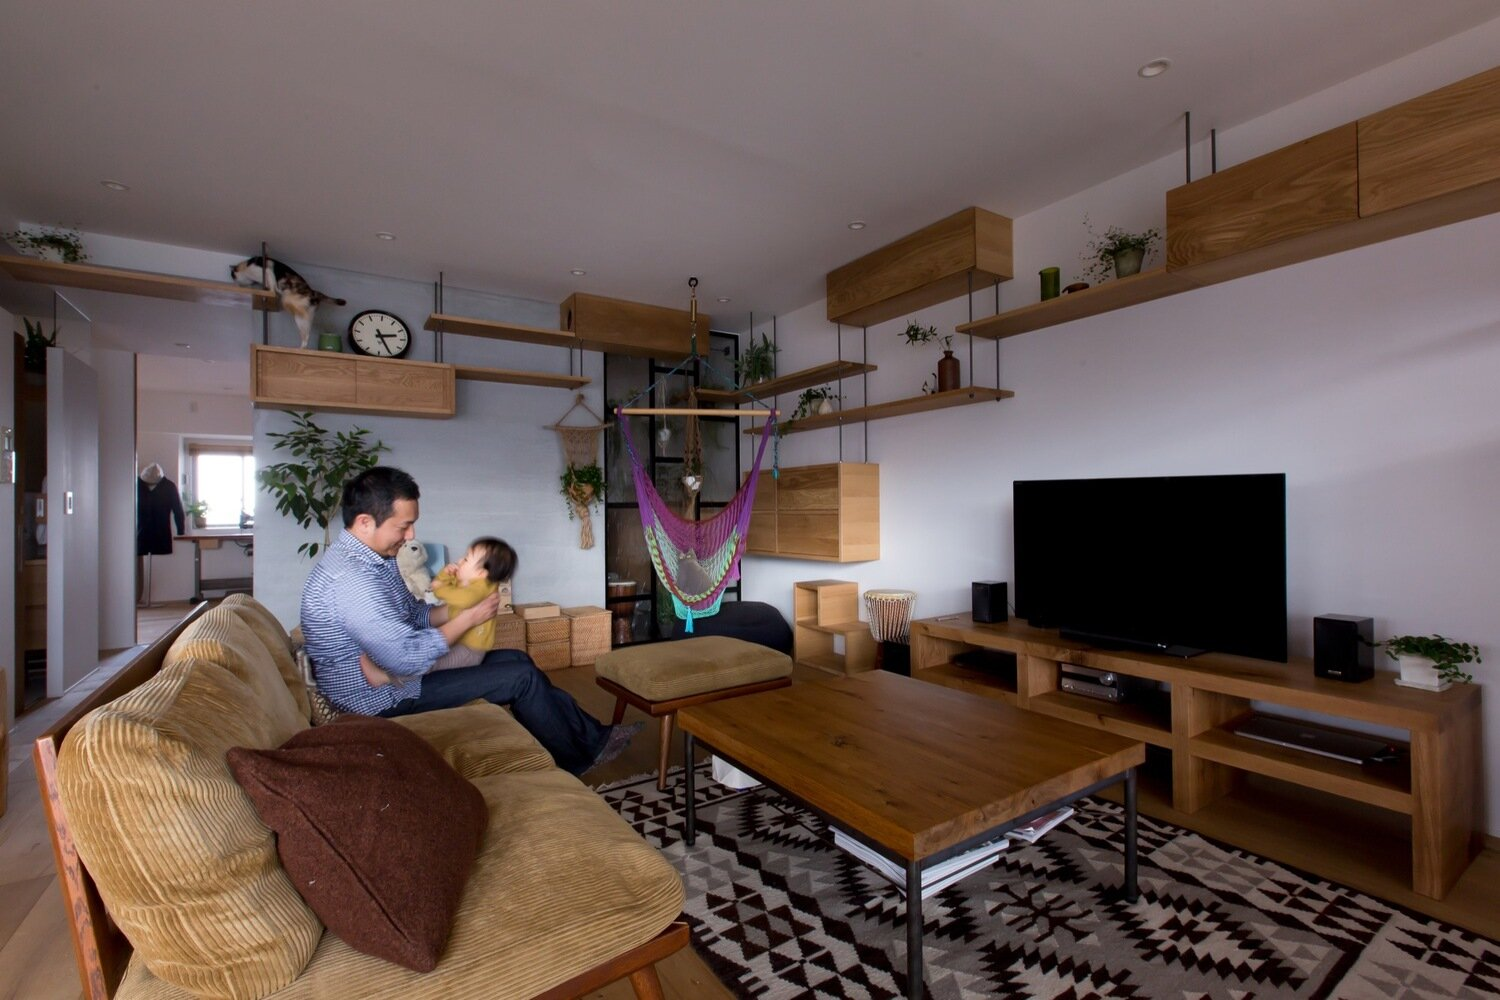 Nionohama Apartment House Renovation - ALTS Design Office - Japan - Living Room - Humble Homes